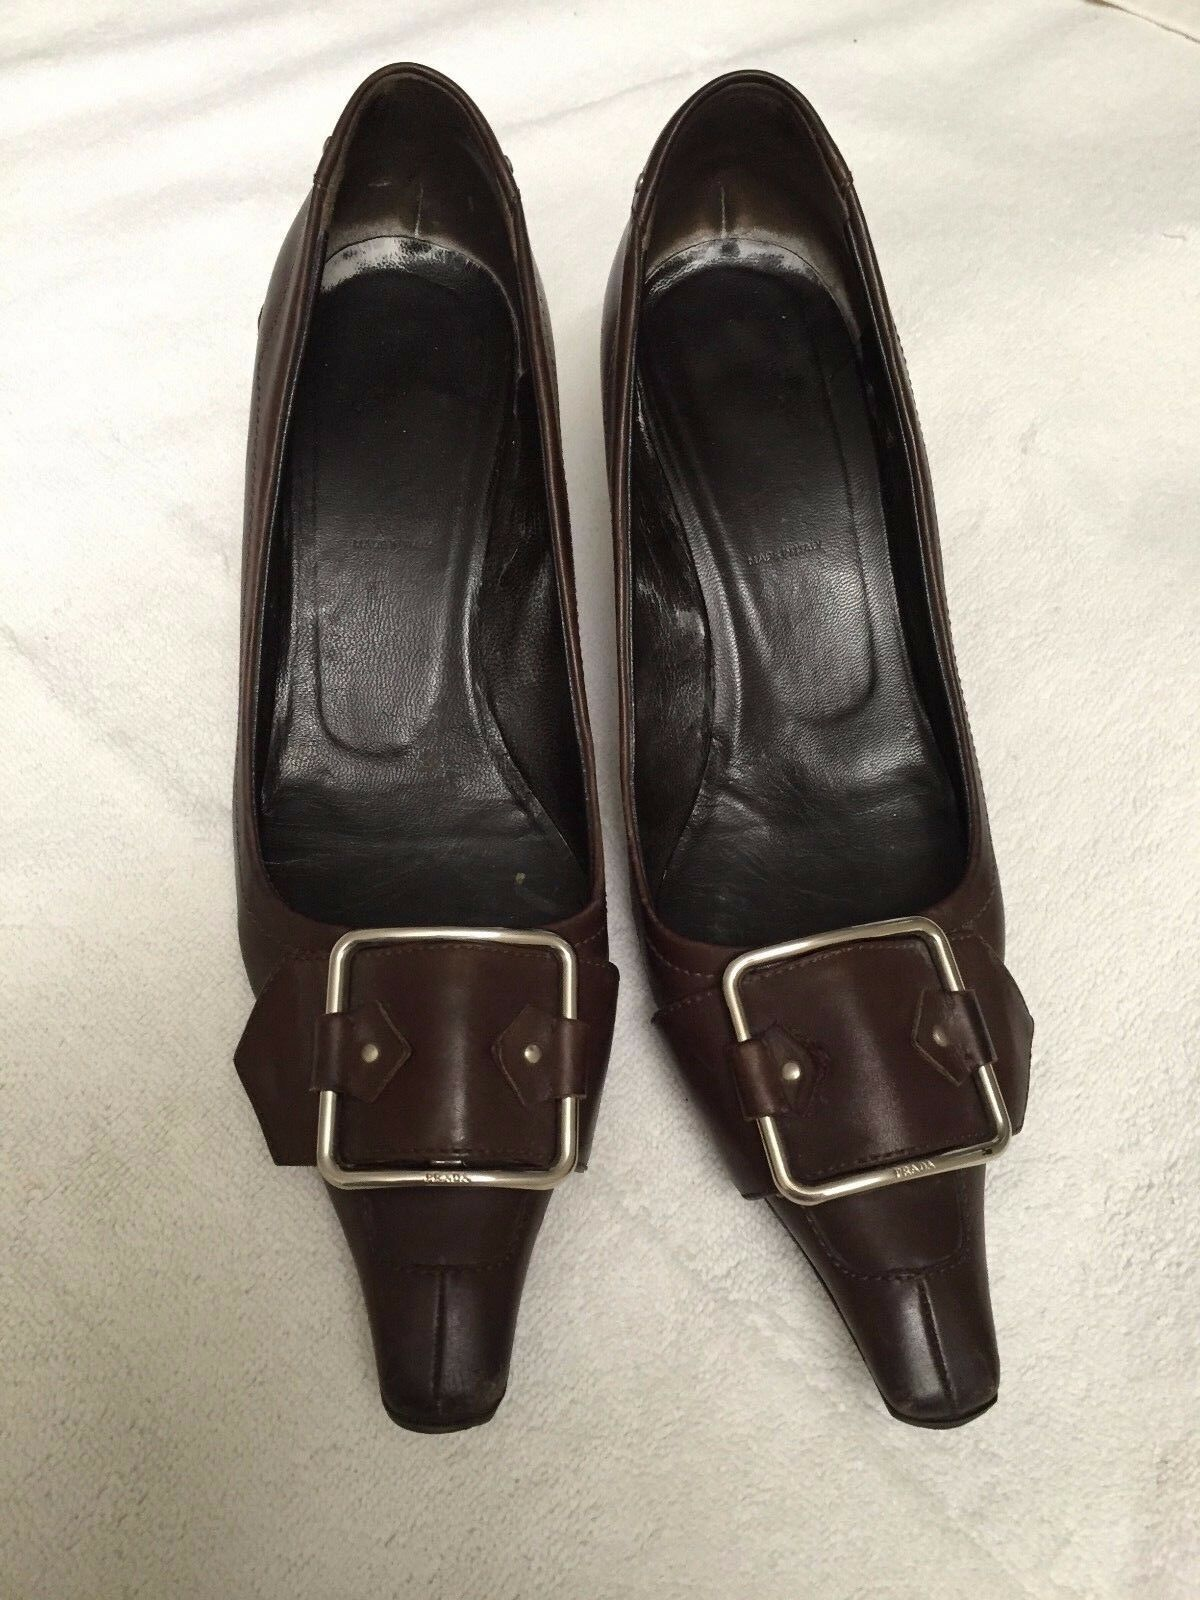 Prada Brown Pointy Kitten Heels Size 36.5